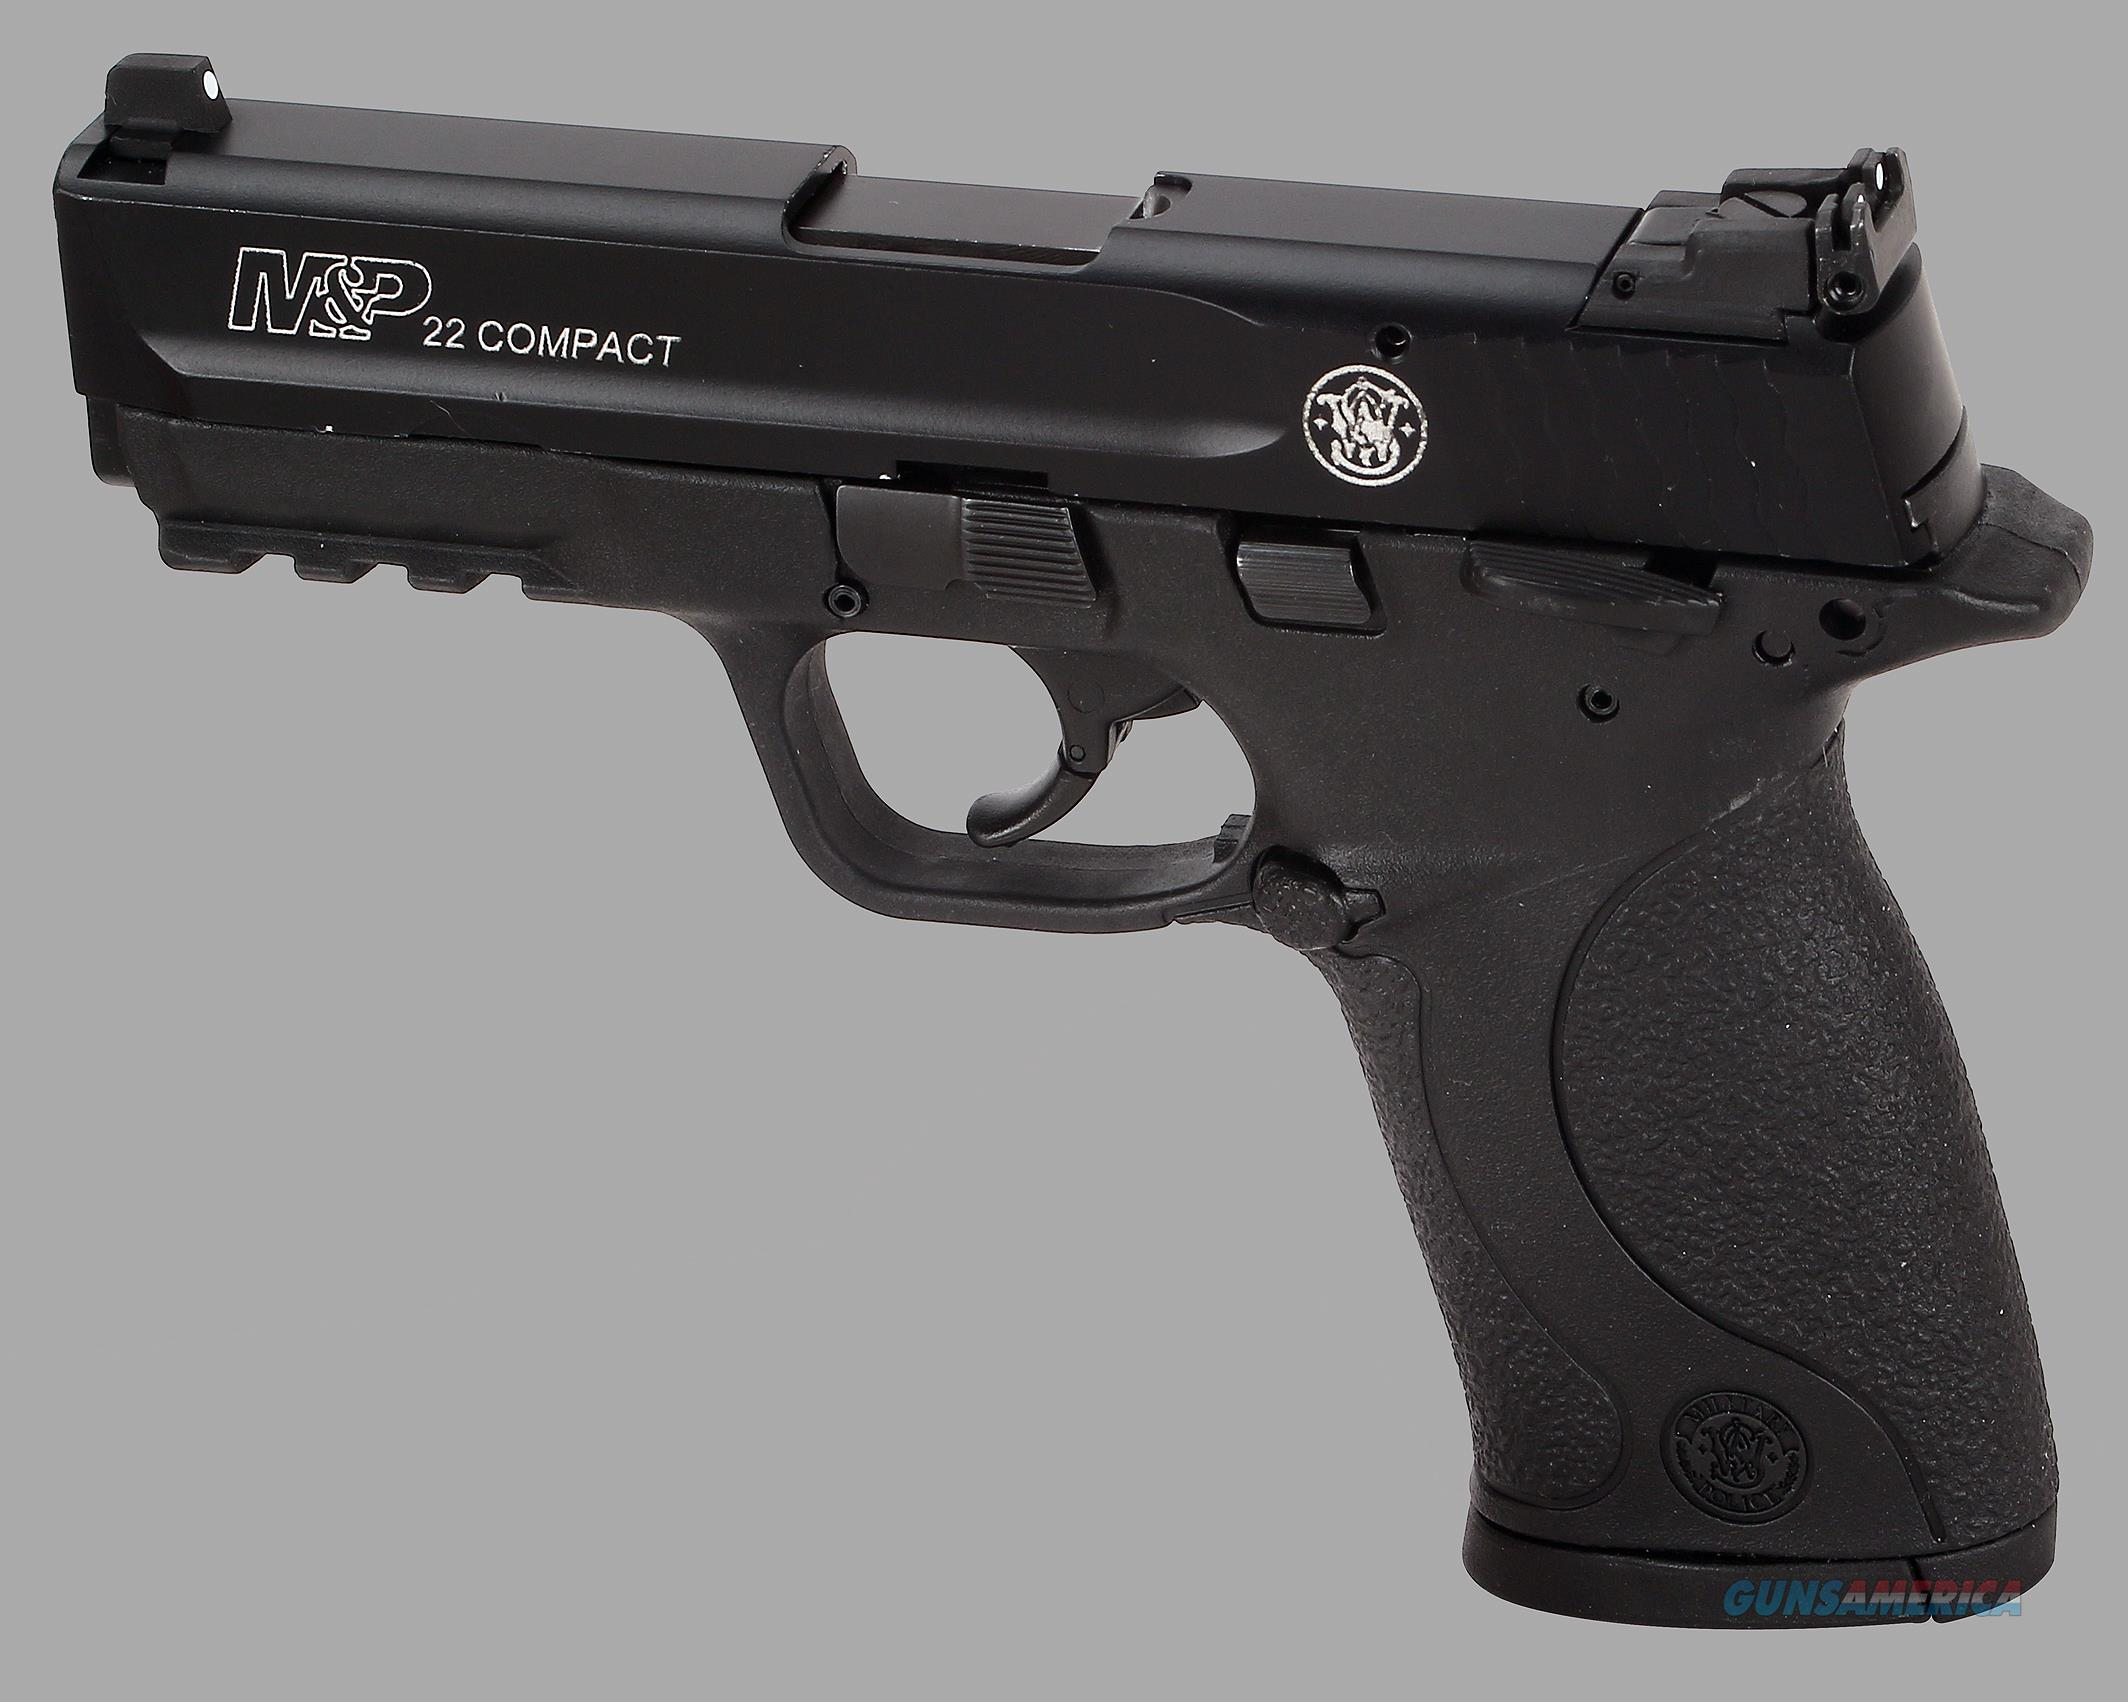 Smith & Wesson 22LR M&P C Pistol  Guns > Pistols > Smith & Wesson Pistols - Autos > Polymer Frame